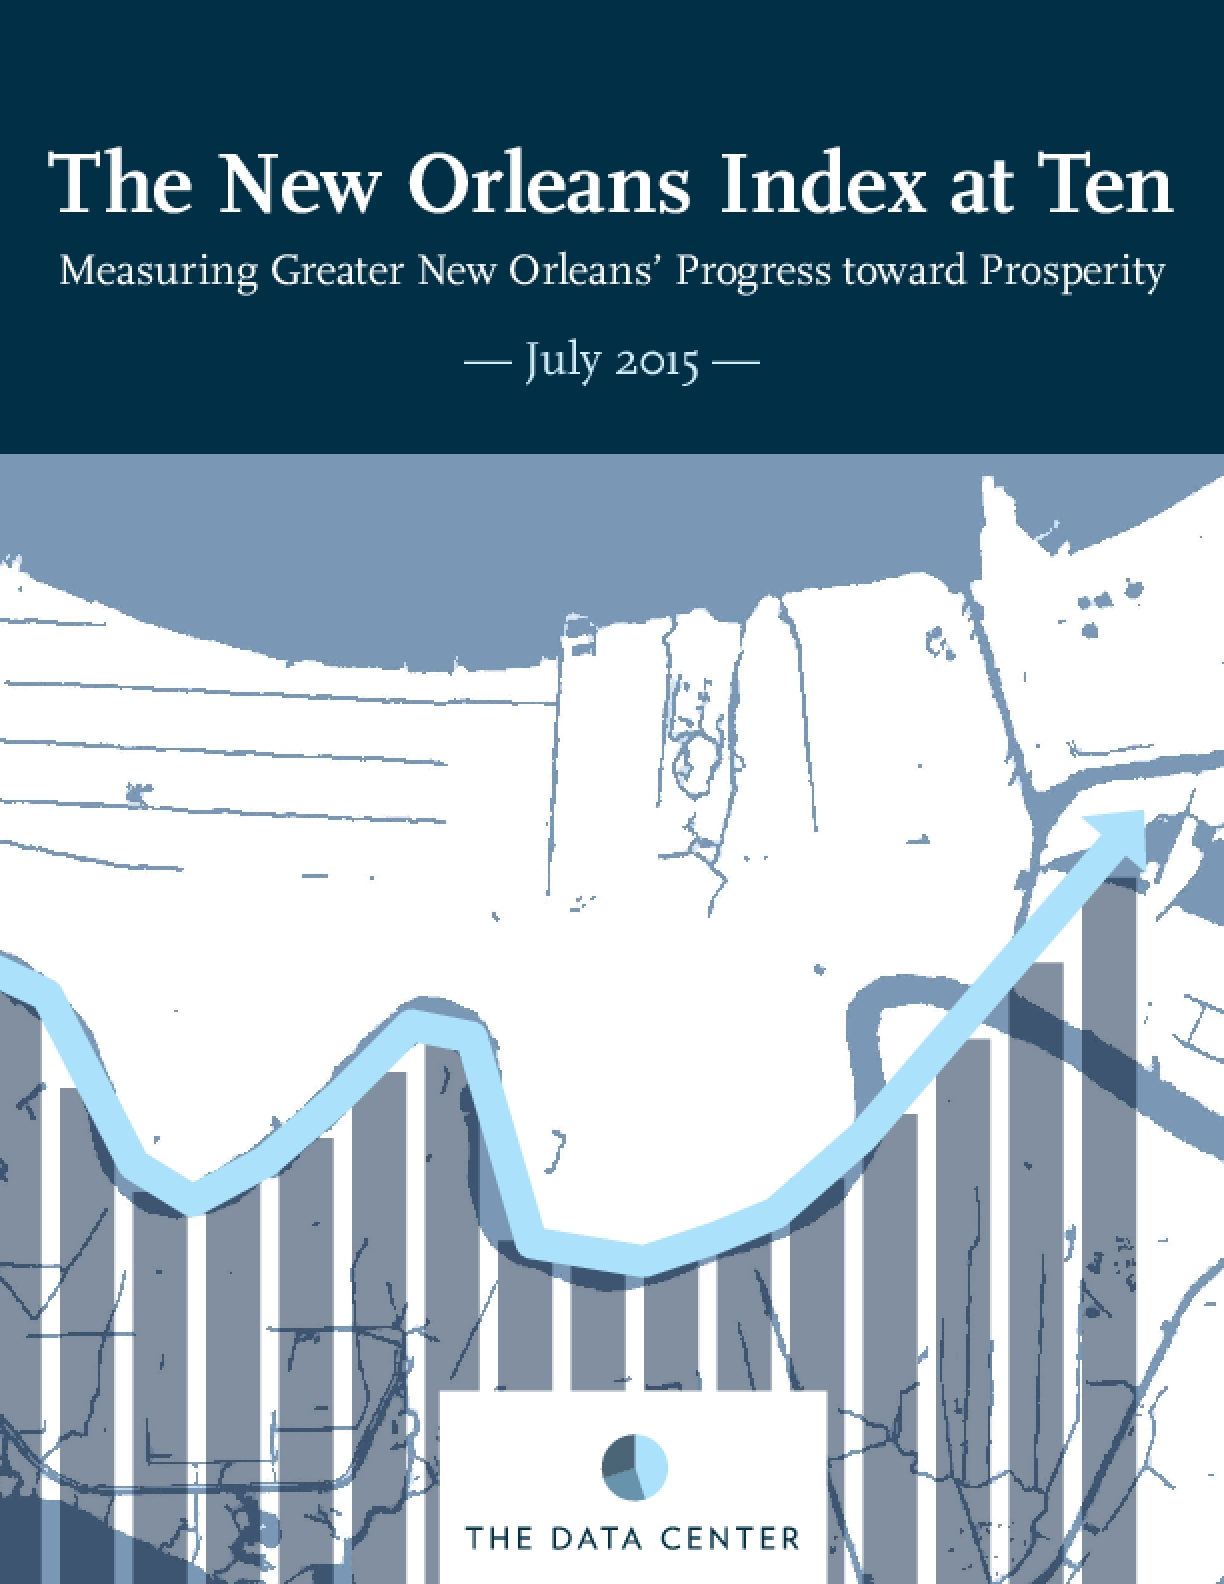 The New Orleans Index at Ten: Measuring Greater New Orleans' Progress toward Prosperity